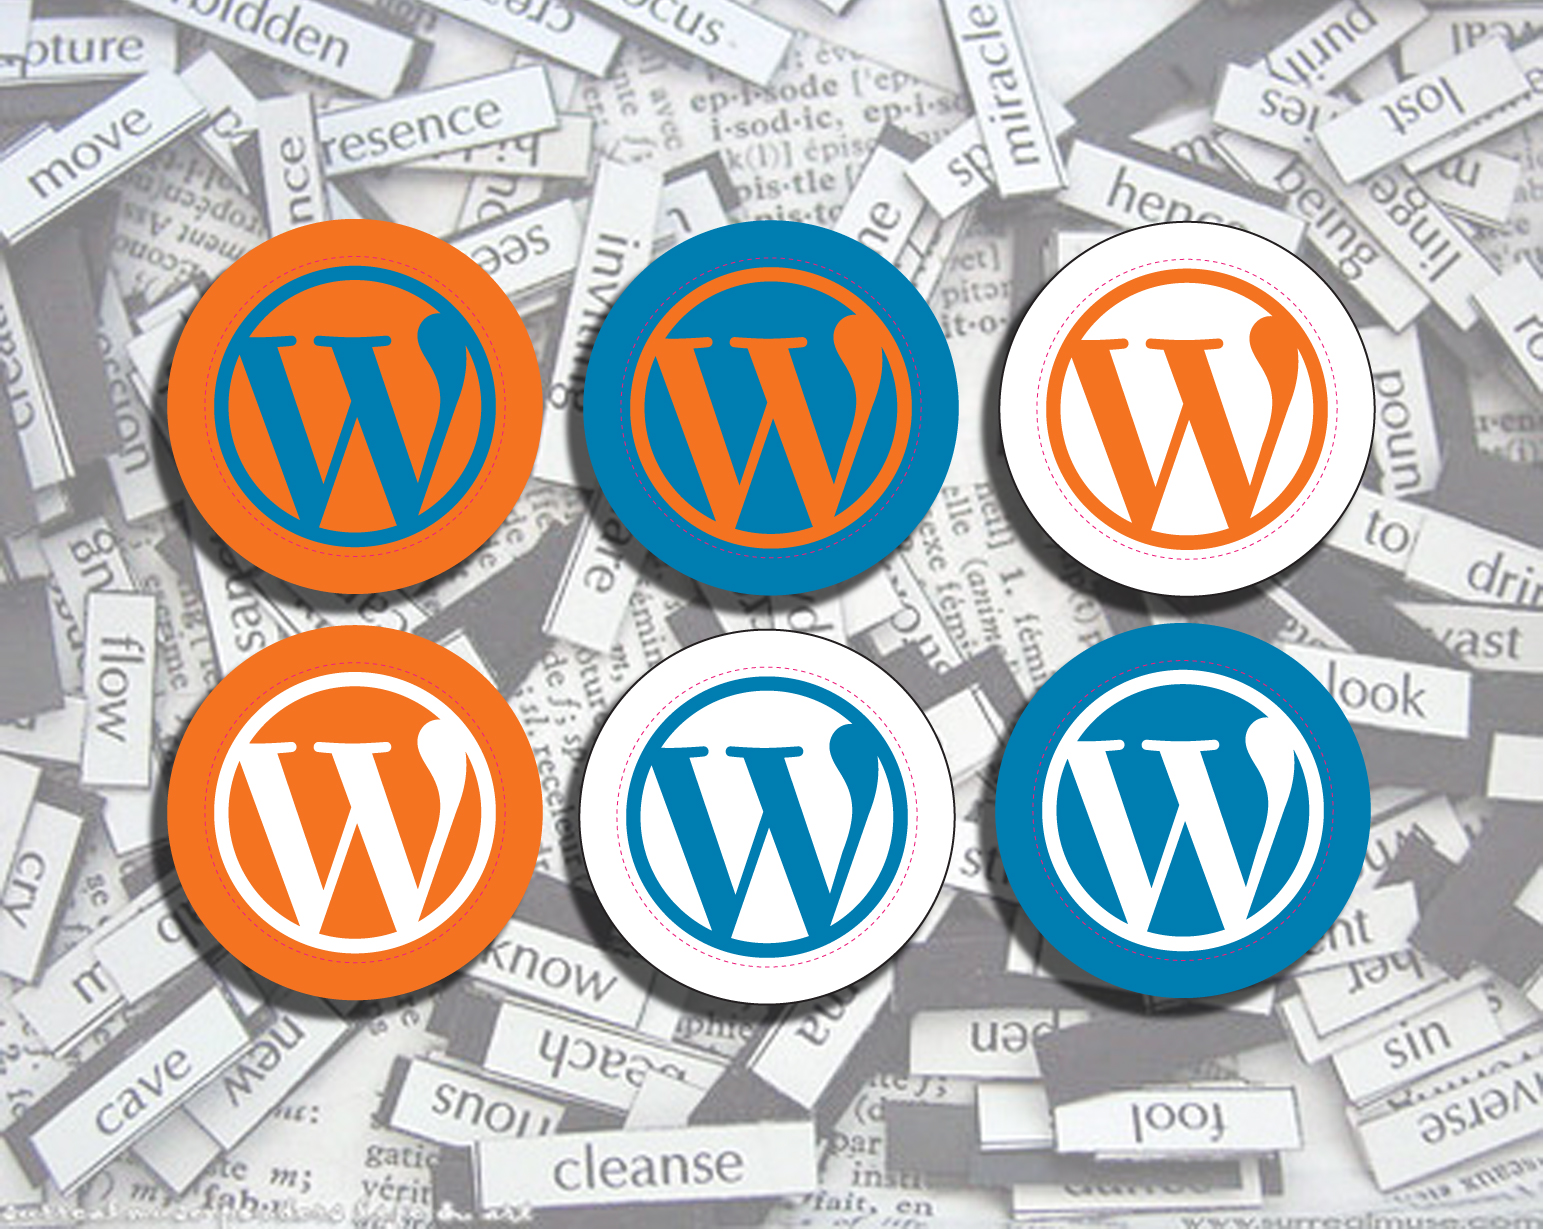 WordPress Stickers Everywhere by John Fischer, licensed CC BY 2.0 (https://flic.kr/p/6K84Ek)